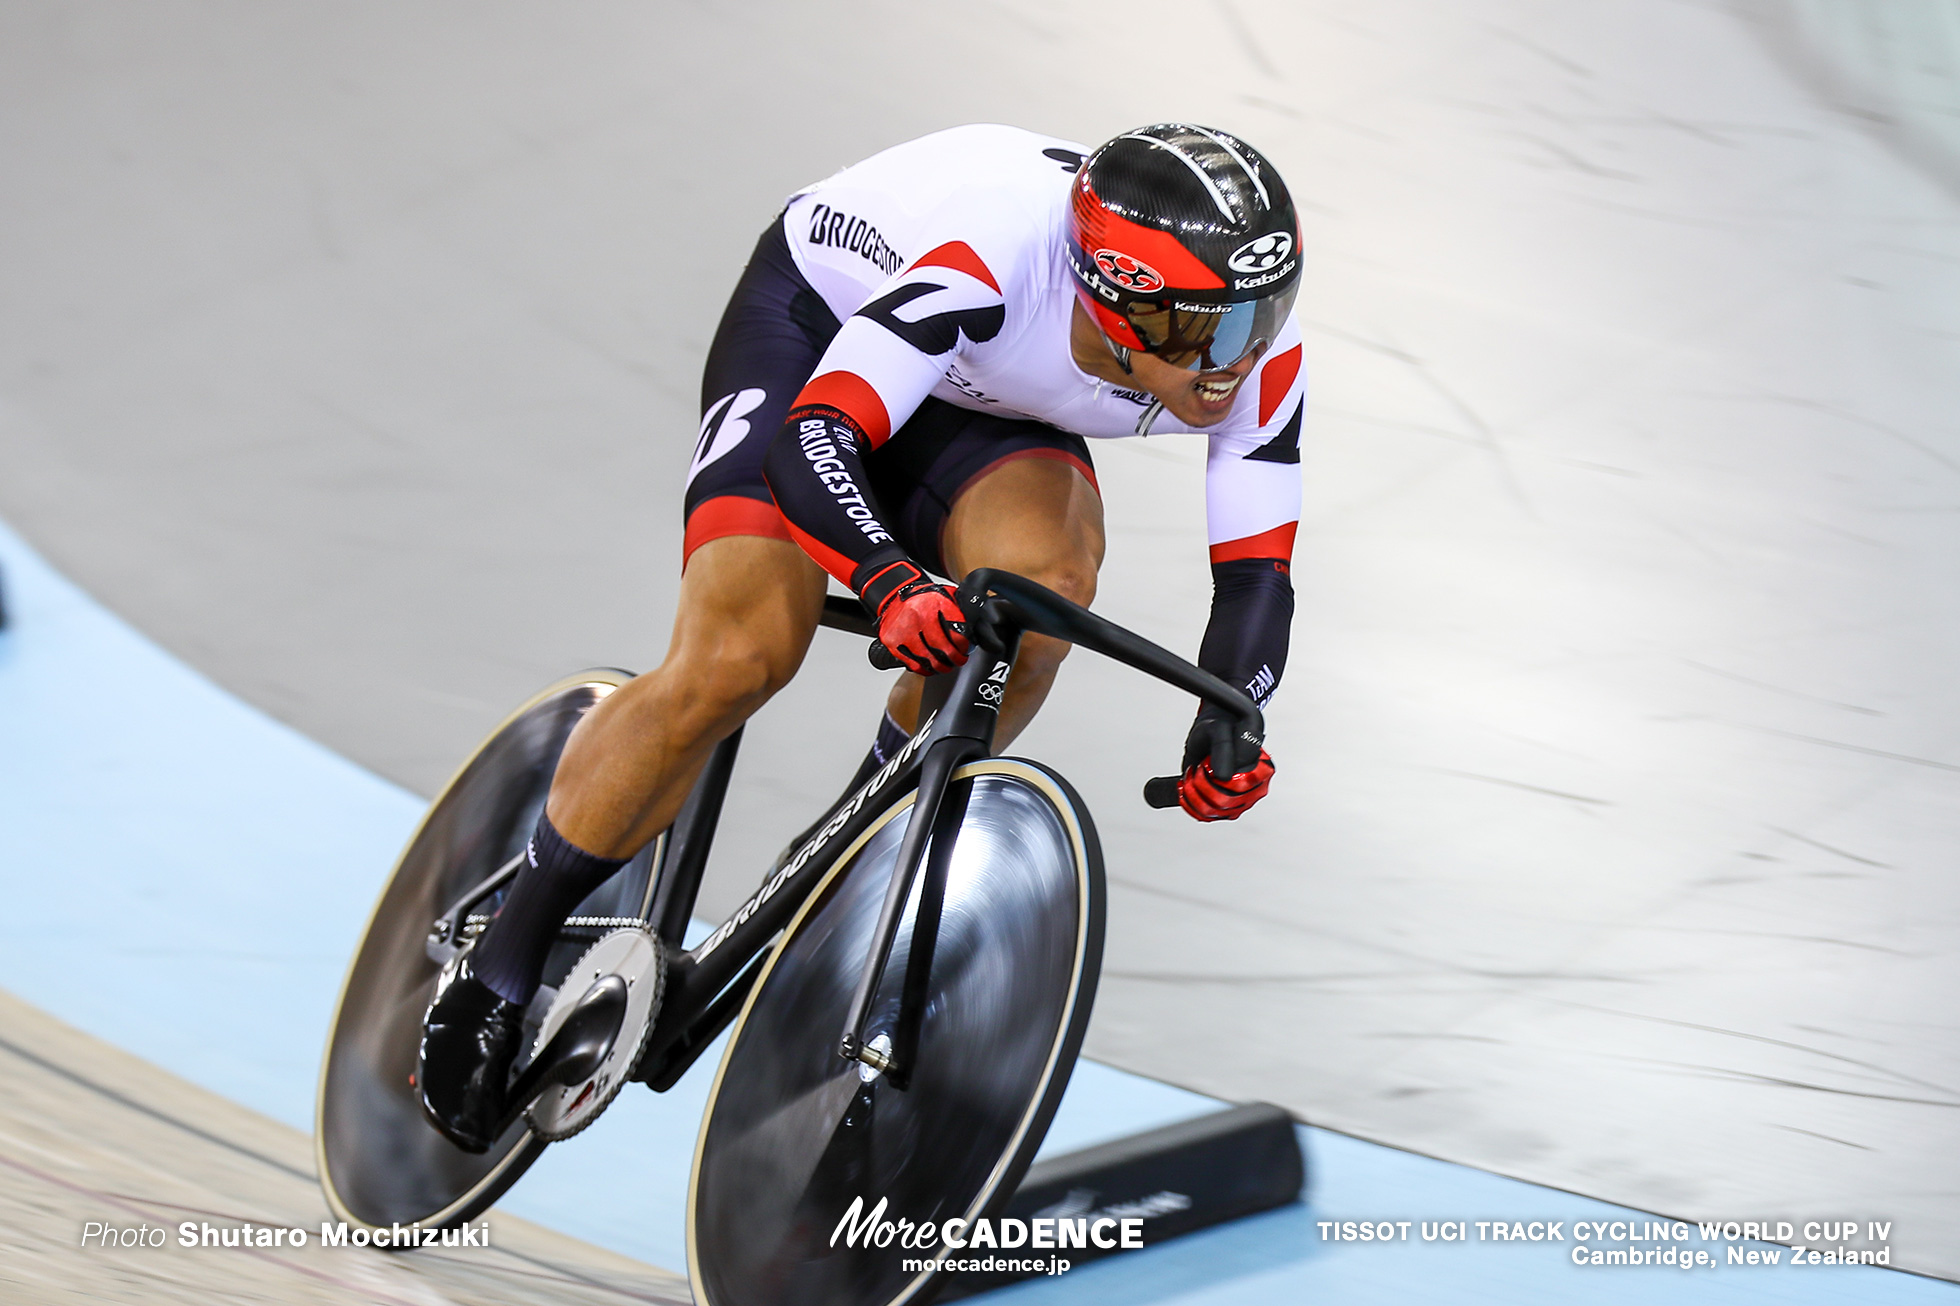 Qualifying / Men's Sprint / TISSOT UCI TRACK CYCLING WORLD CUP IV, Cambridge, New Zealand